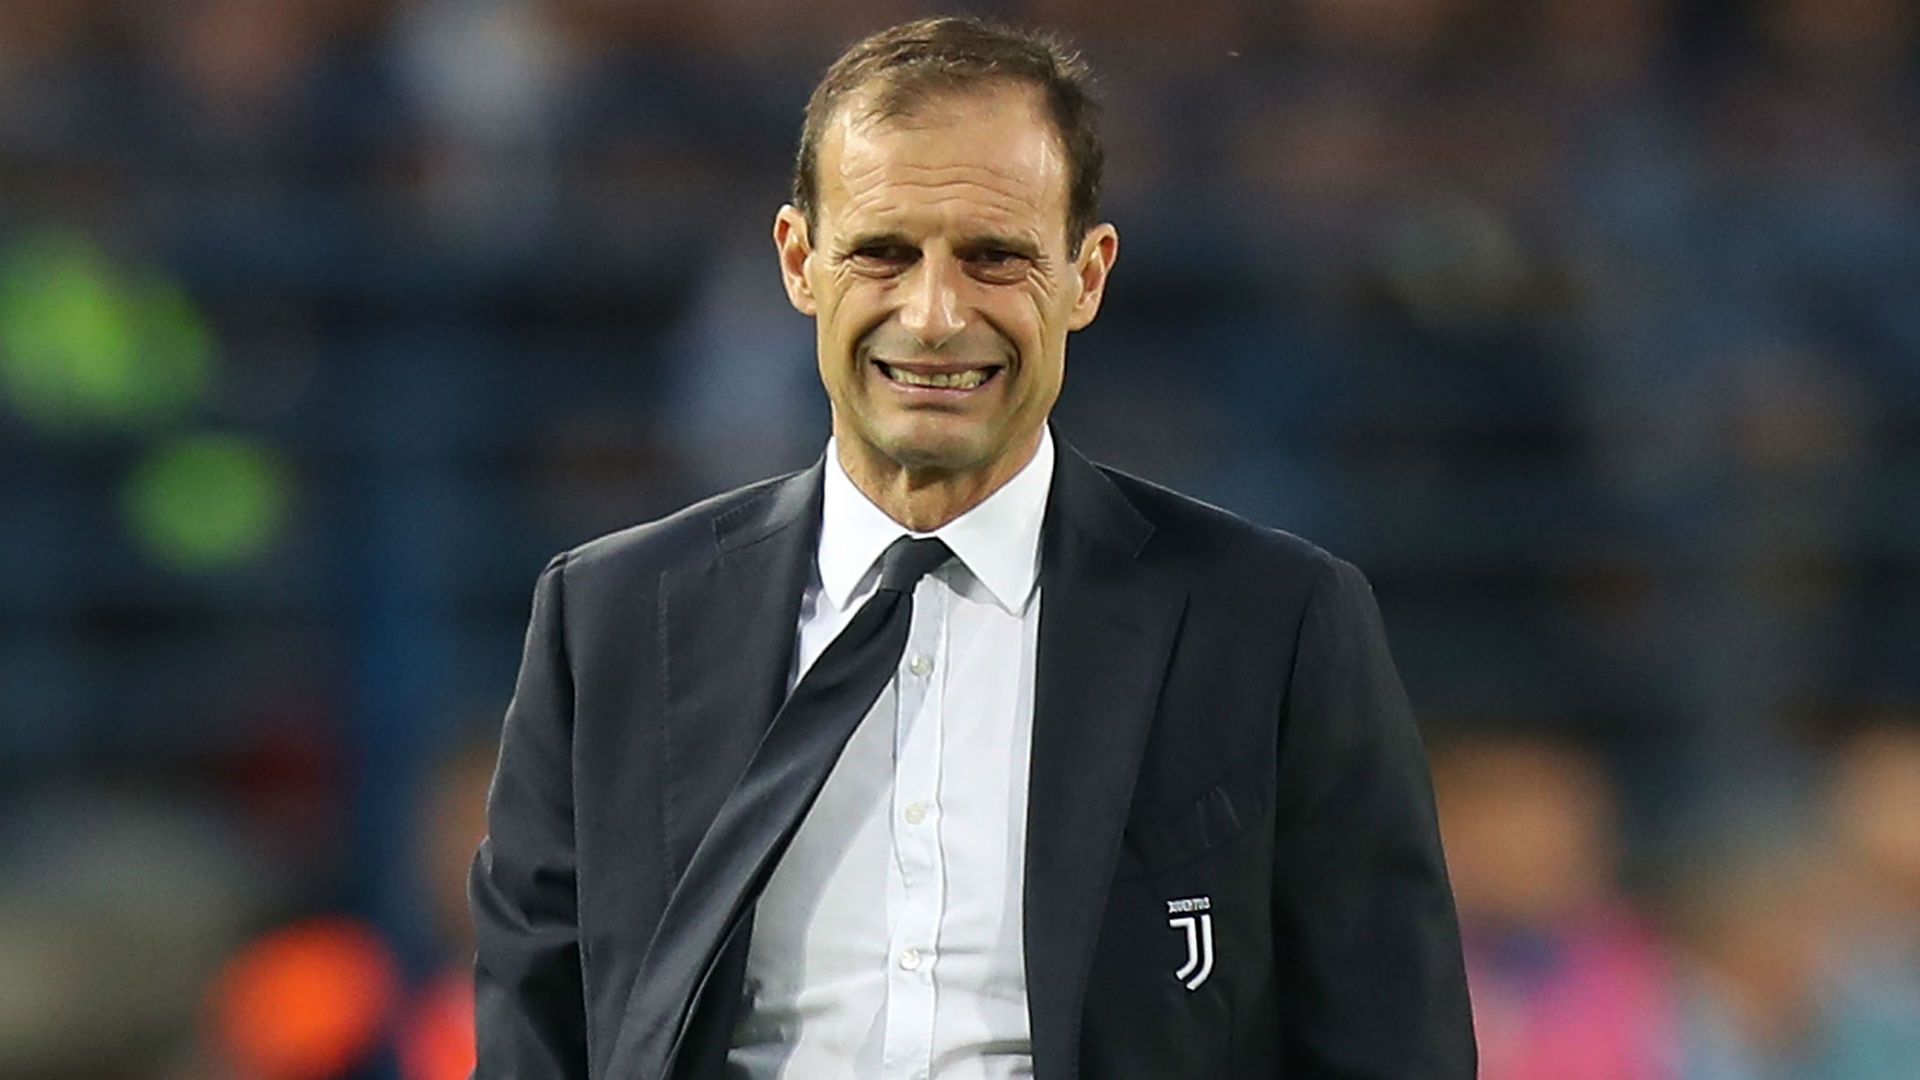 Allegri and Juventus keen to put United defeat behind them